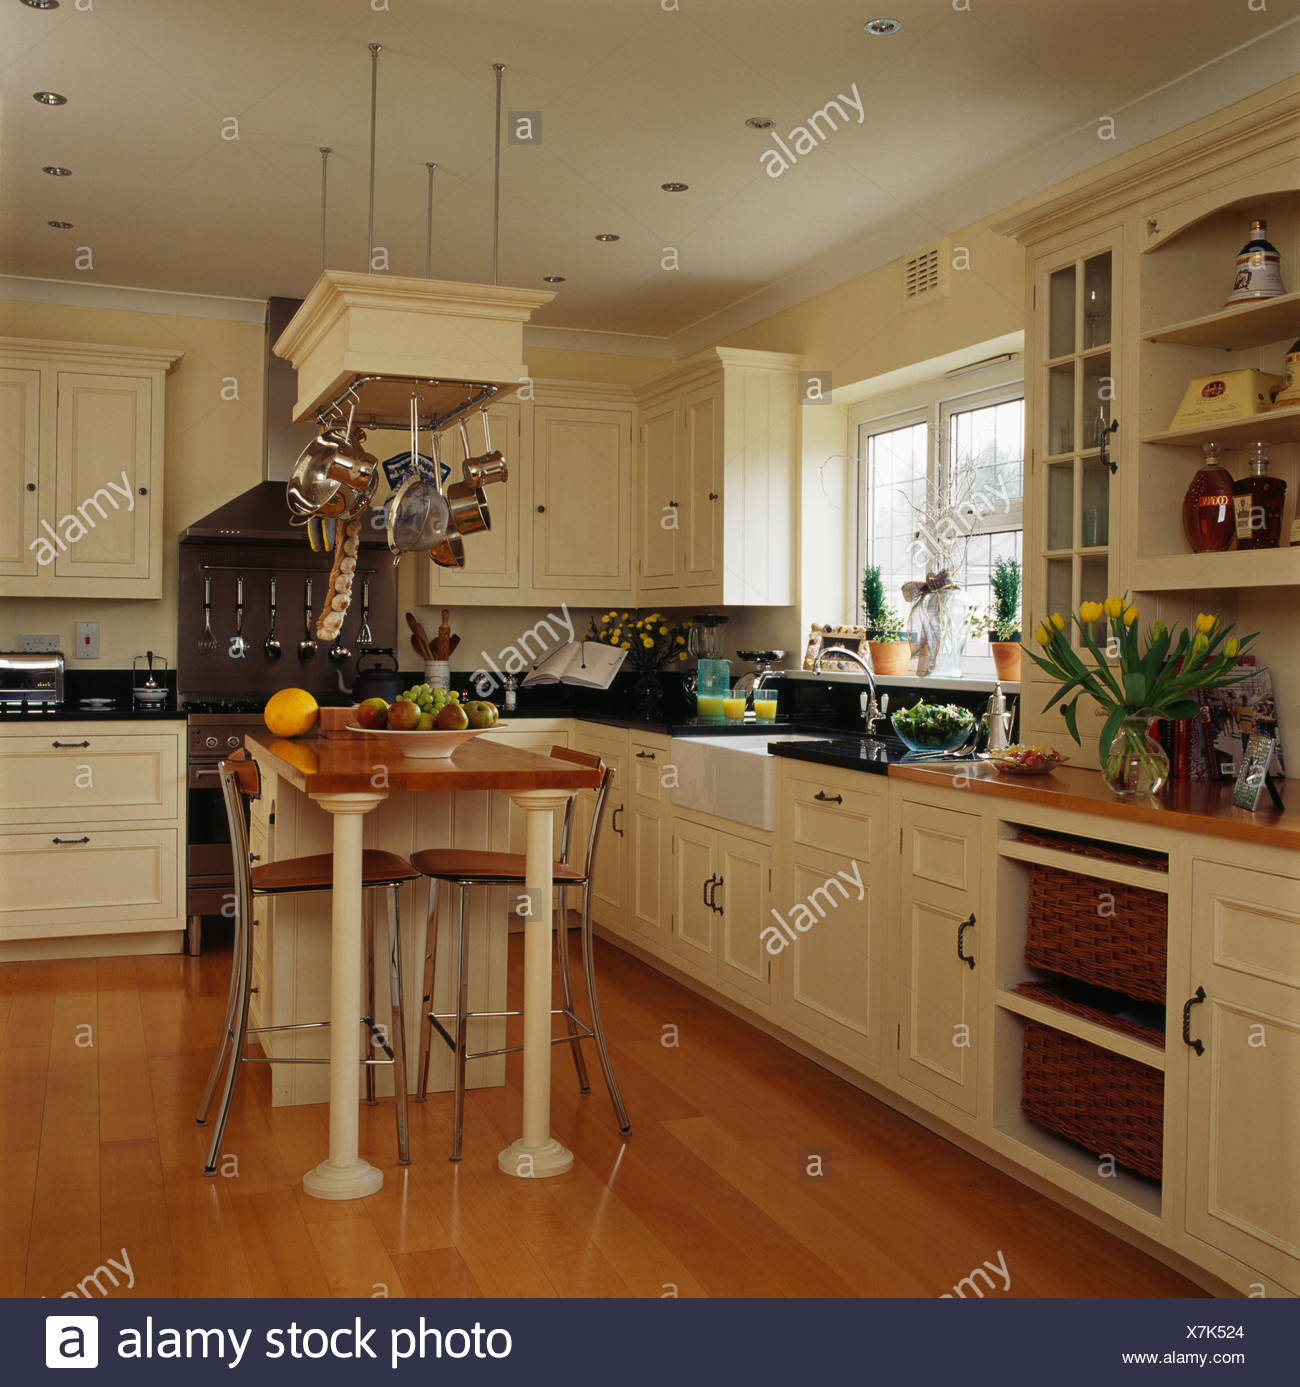 Small Country Kitchen With Island: Small Country Kitchens Domestic Stock Photos & Small